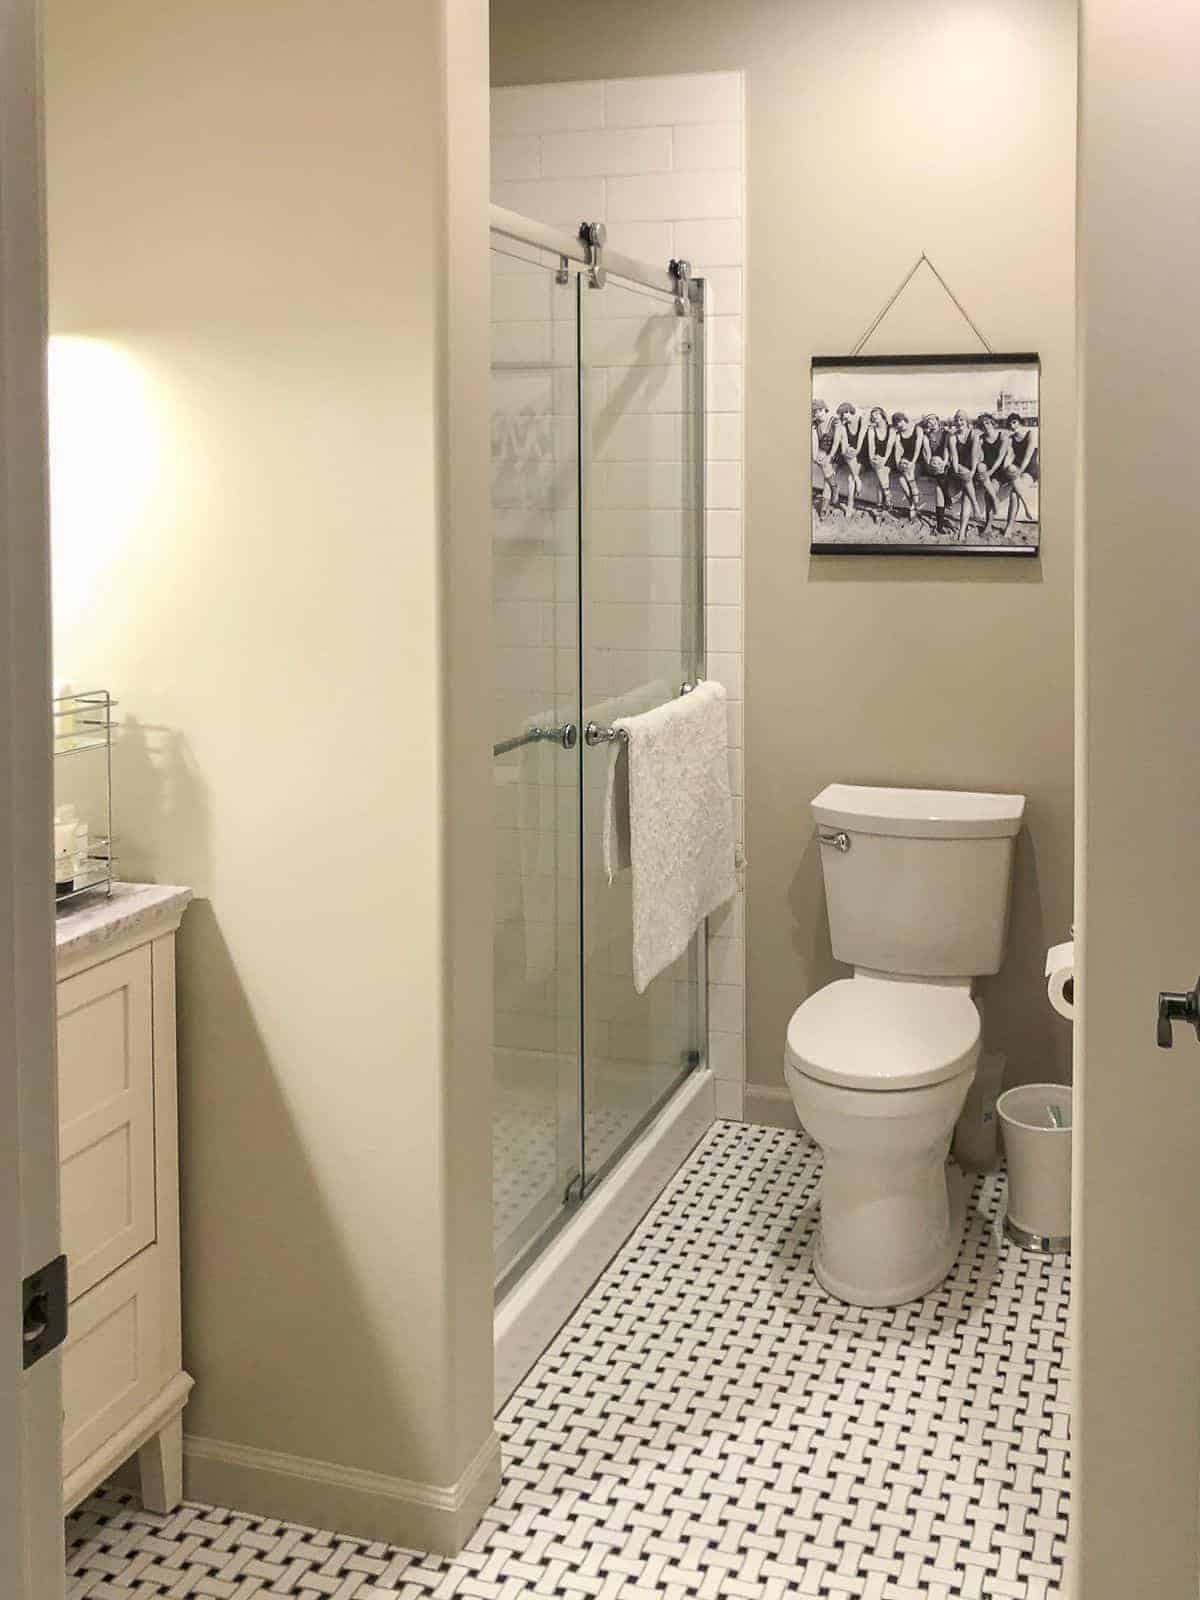 SW Accessible Beige in a small bathroom with a black and white vintage tile floor.